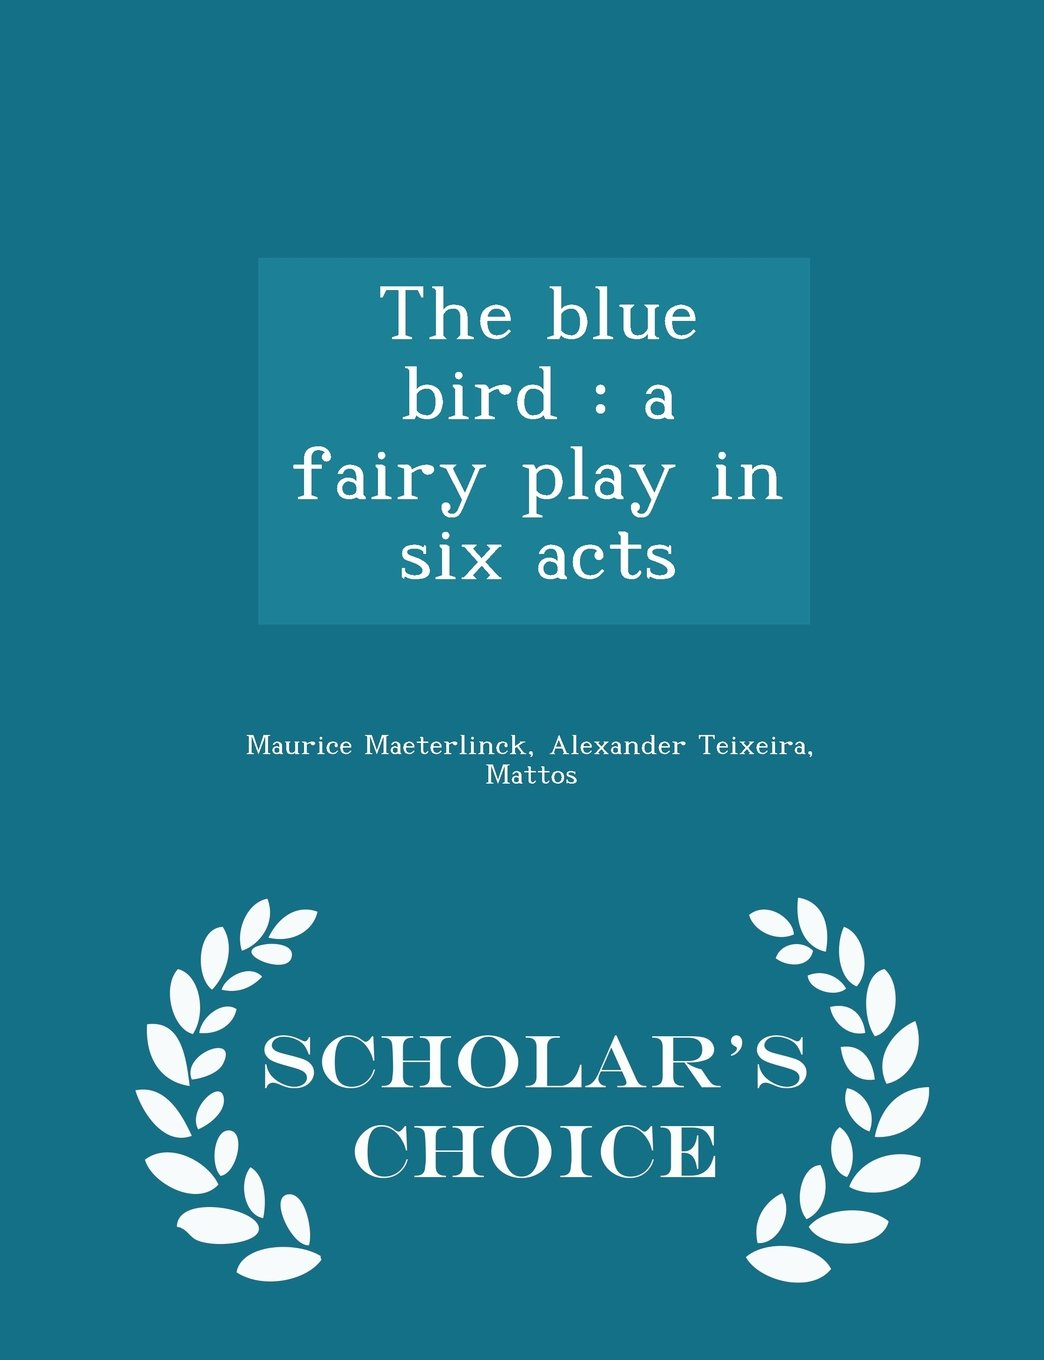 Download The blue bird: a fairy play in six acts - Scholar's Choice Edition PDF